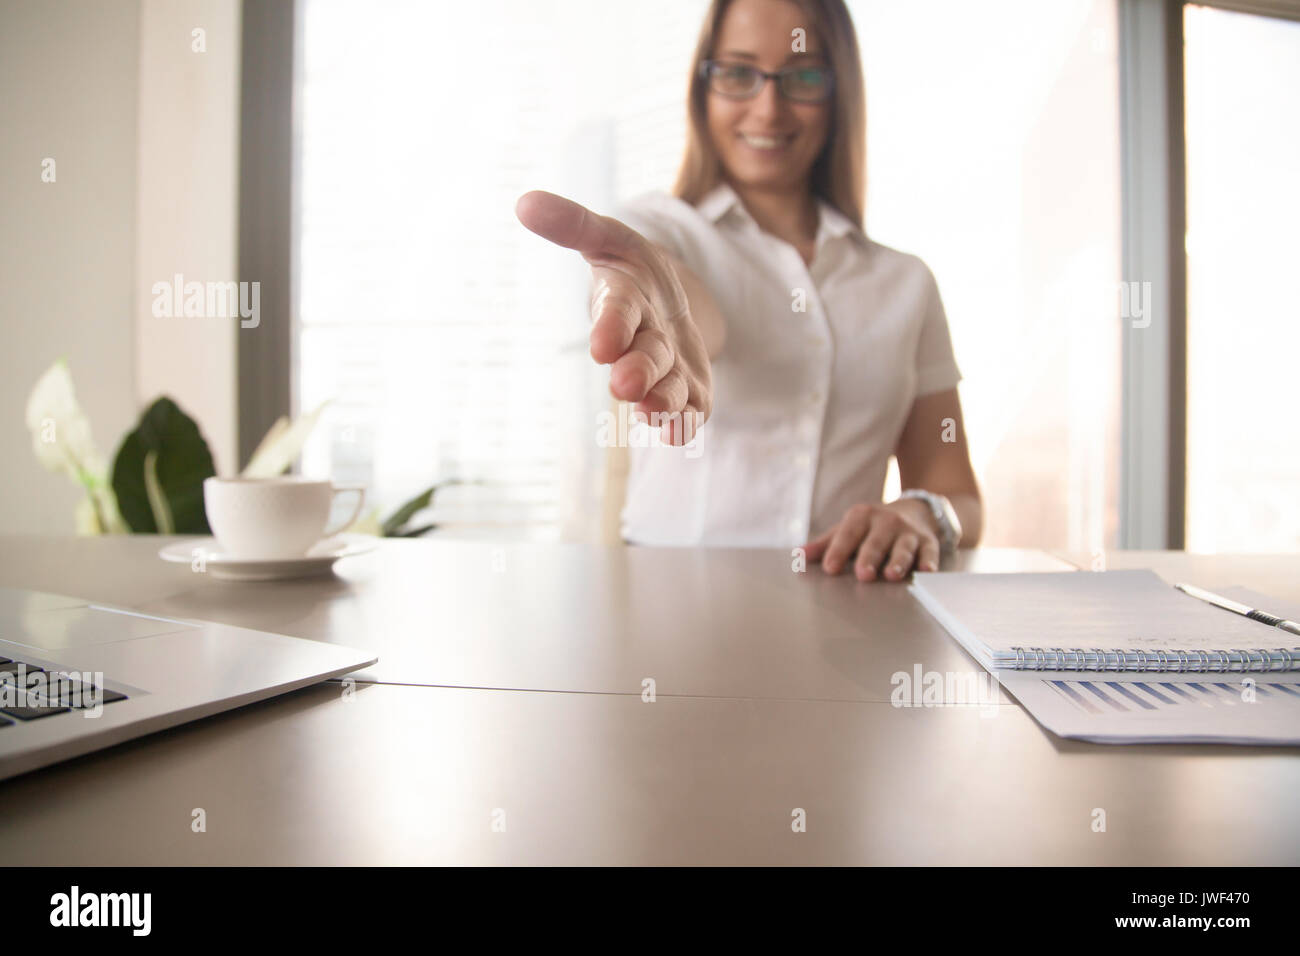 Smiling businesswoman reaching out hand at camera for welcoming  - Stock Image